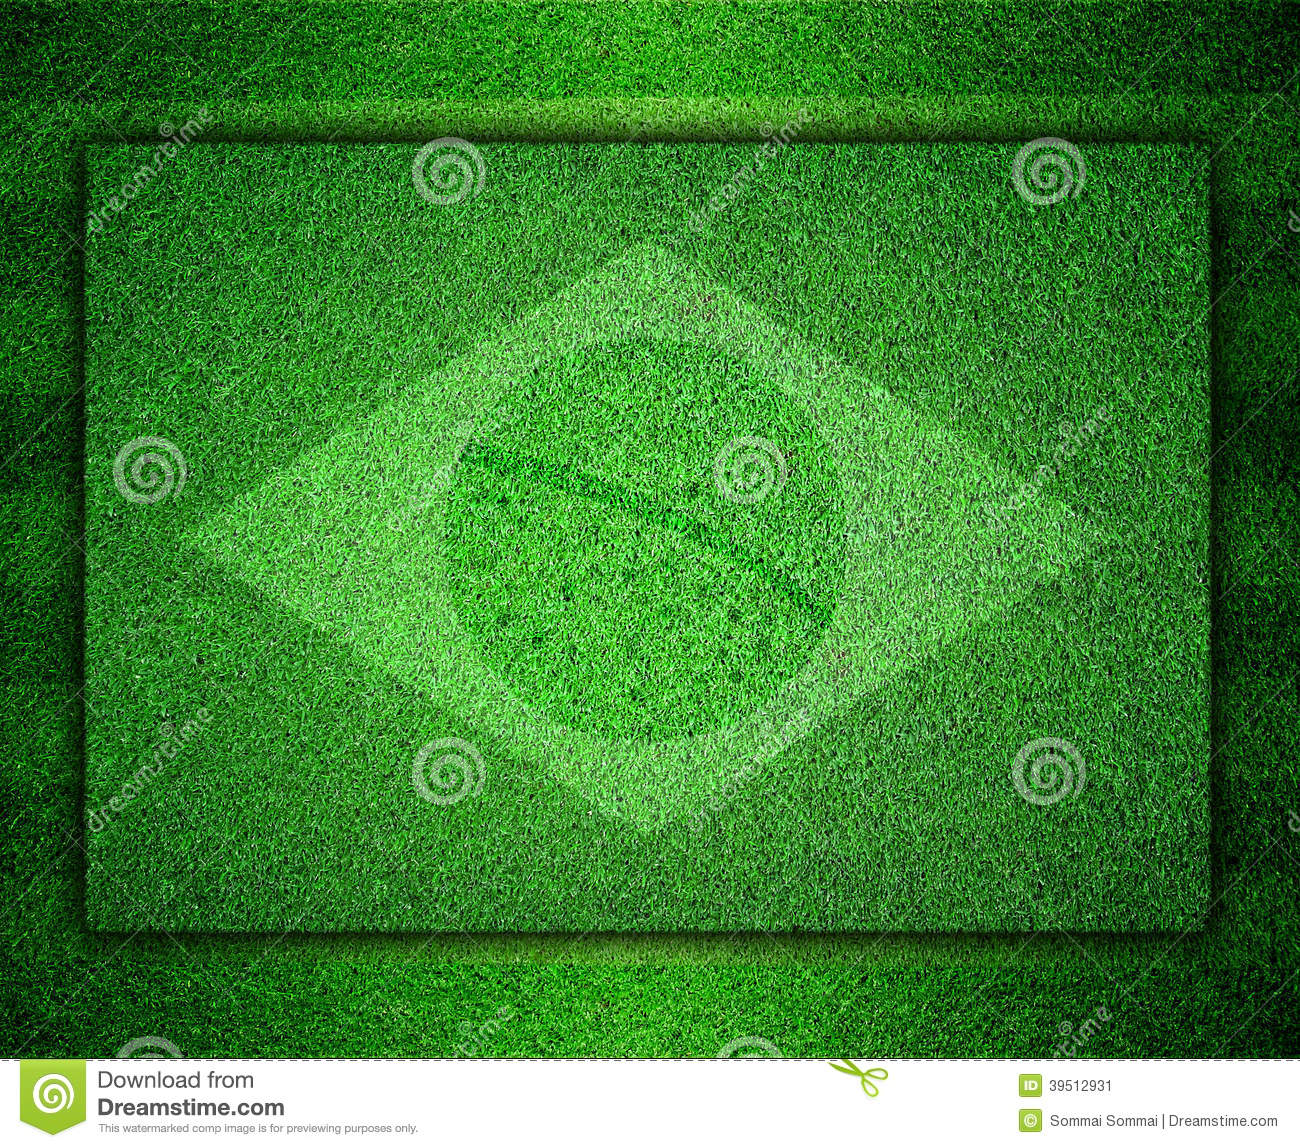 Flag of Brazil as a painting on grass